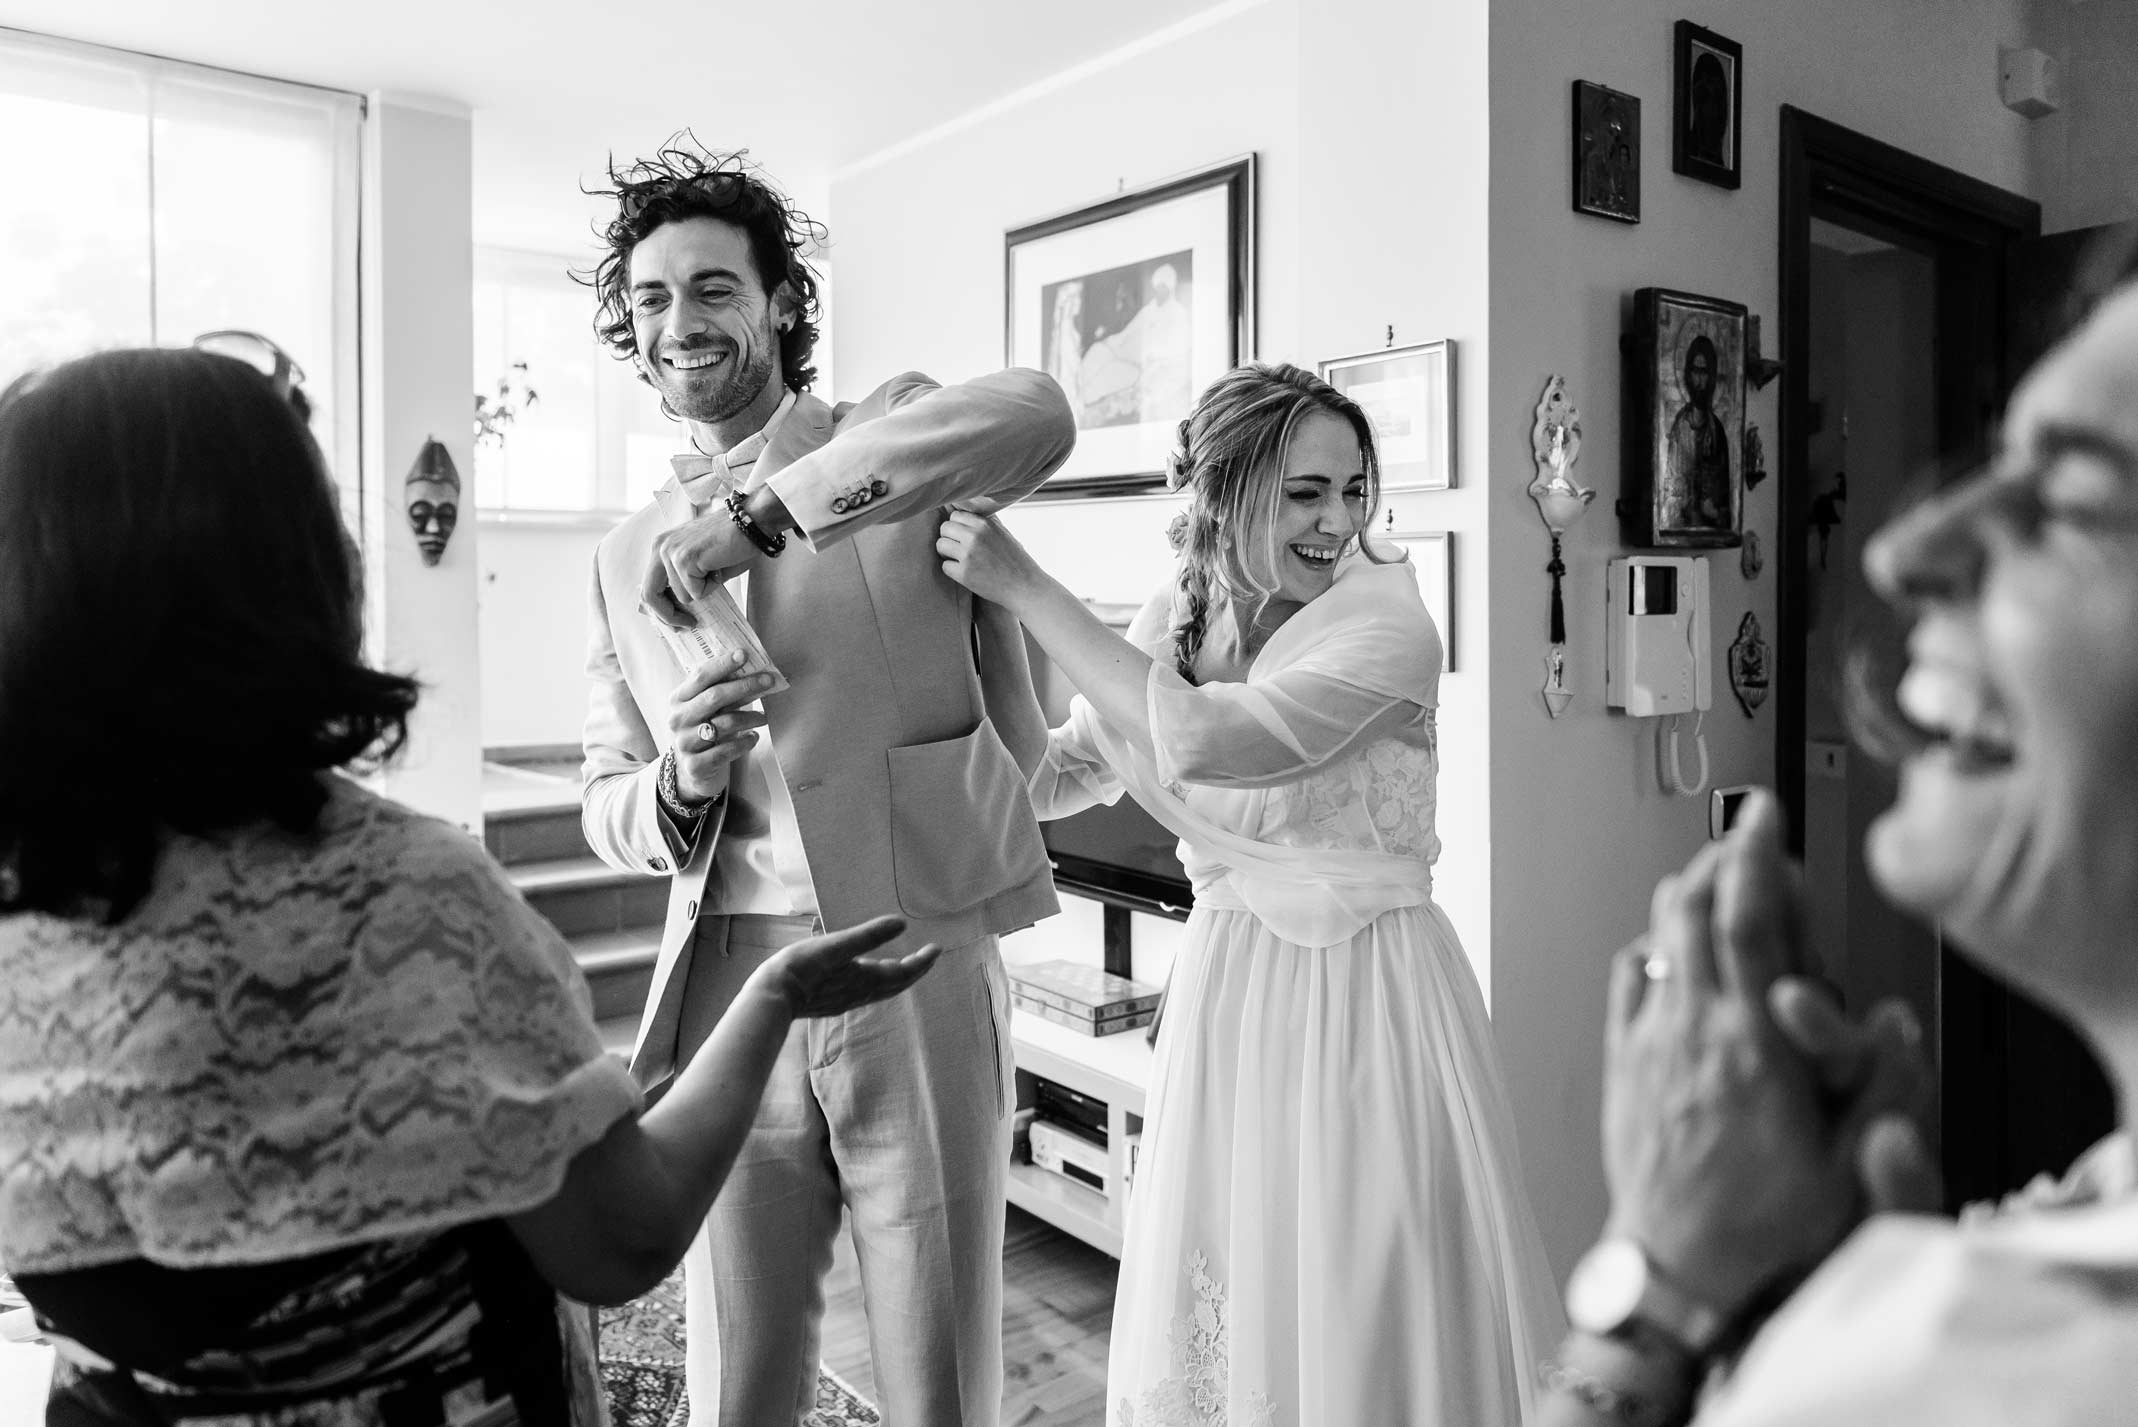 Reportage-Wedding-Photographer-Italy-Bride